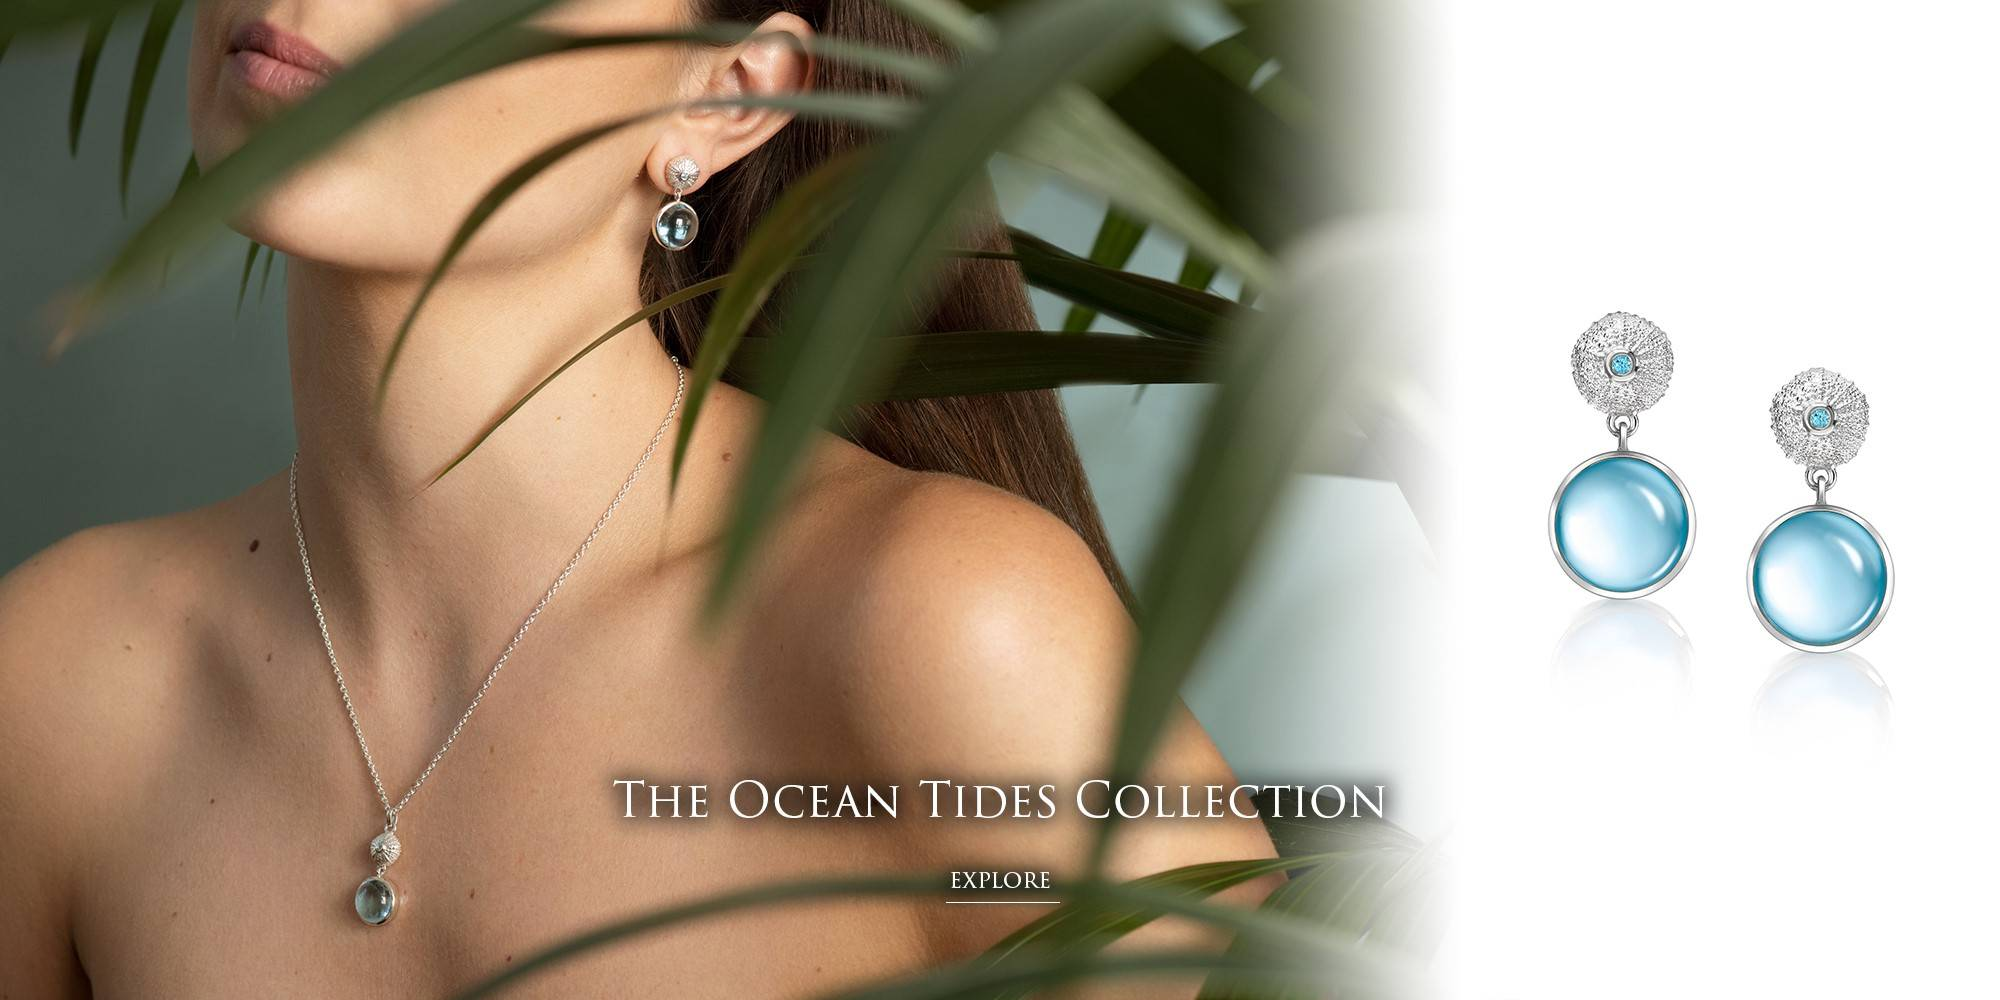 Model Wearing The Ocean Tides Collection